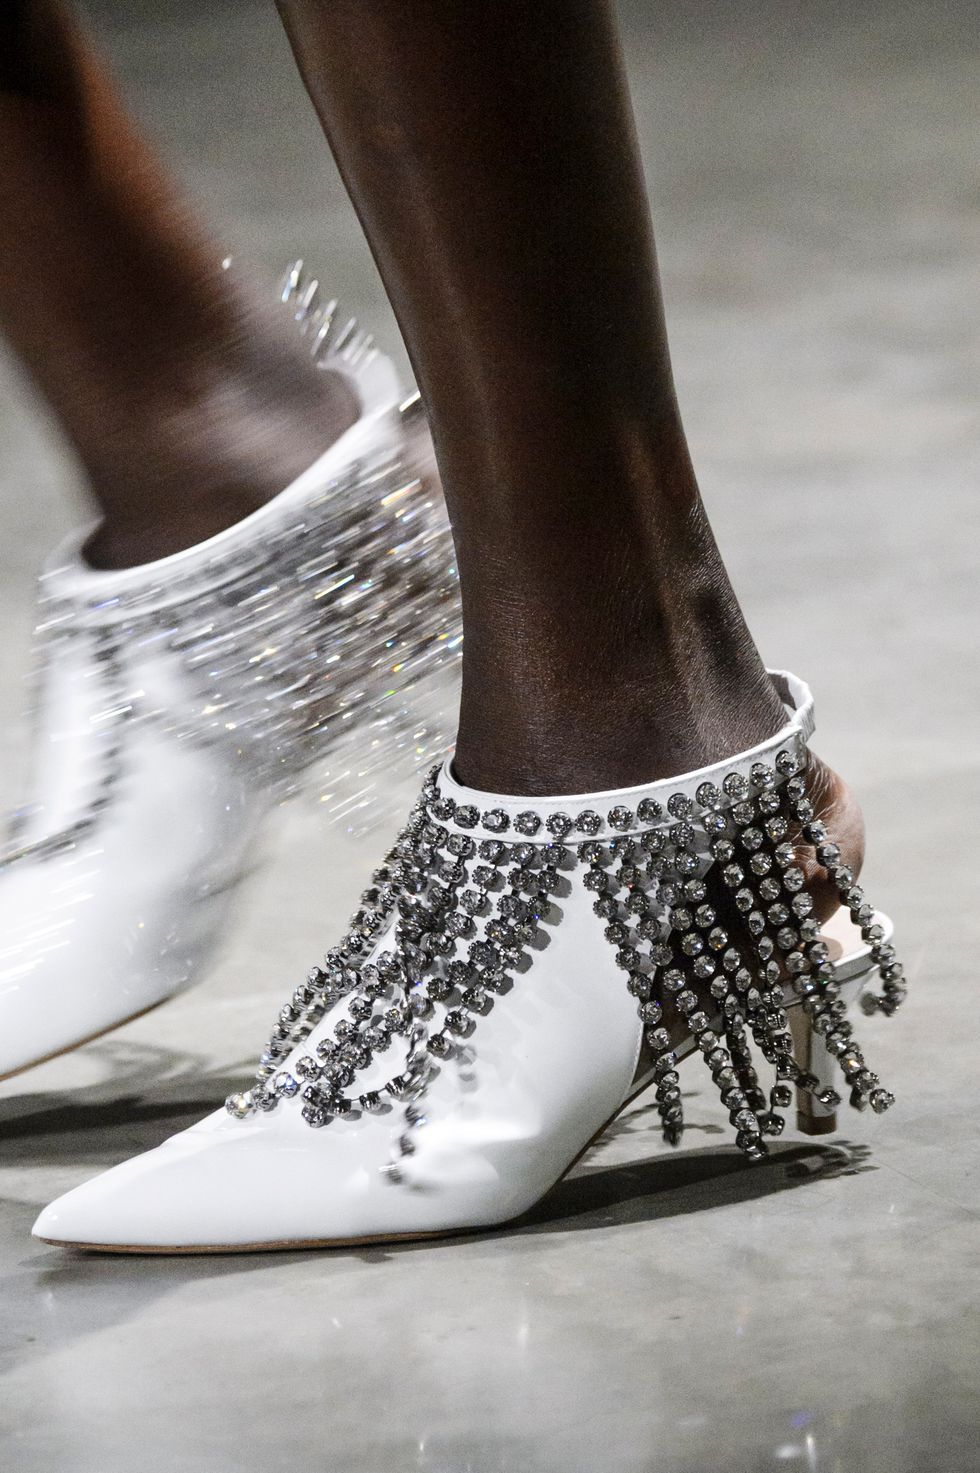 The Hottest Spring 2018 Shoes From The Runways | Fire In ...